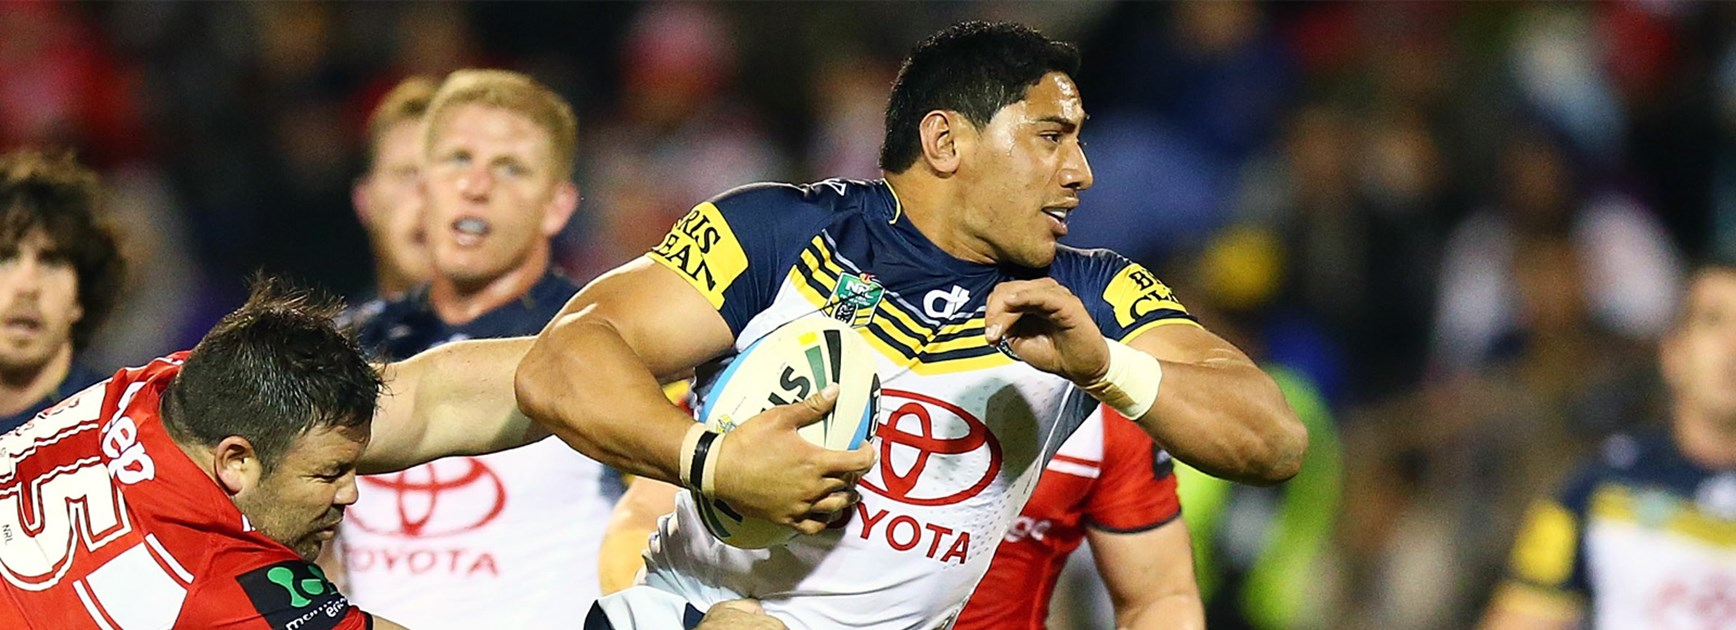 Jason Taumalolo busts through the Dragons' defensive line on Saturday night.